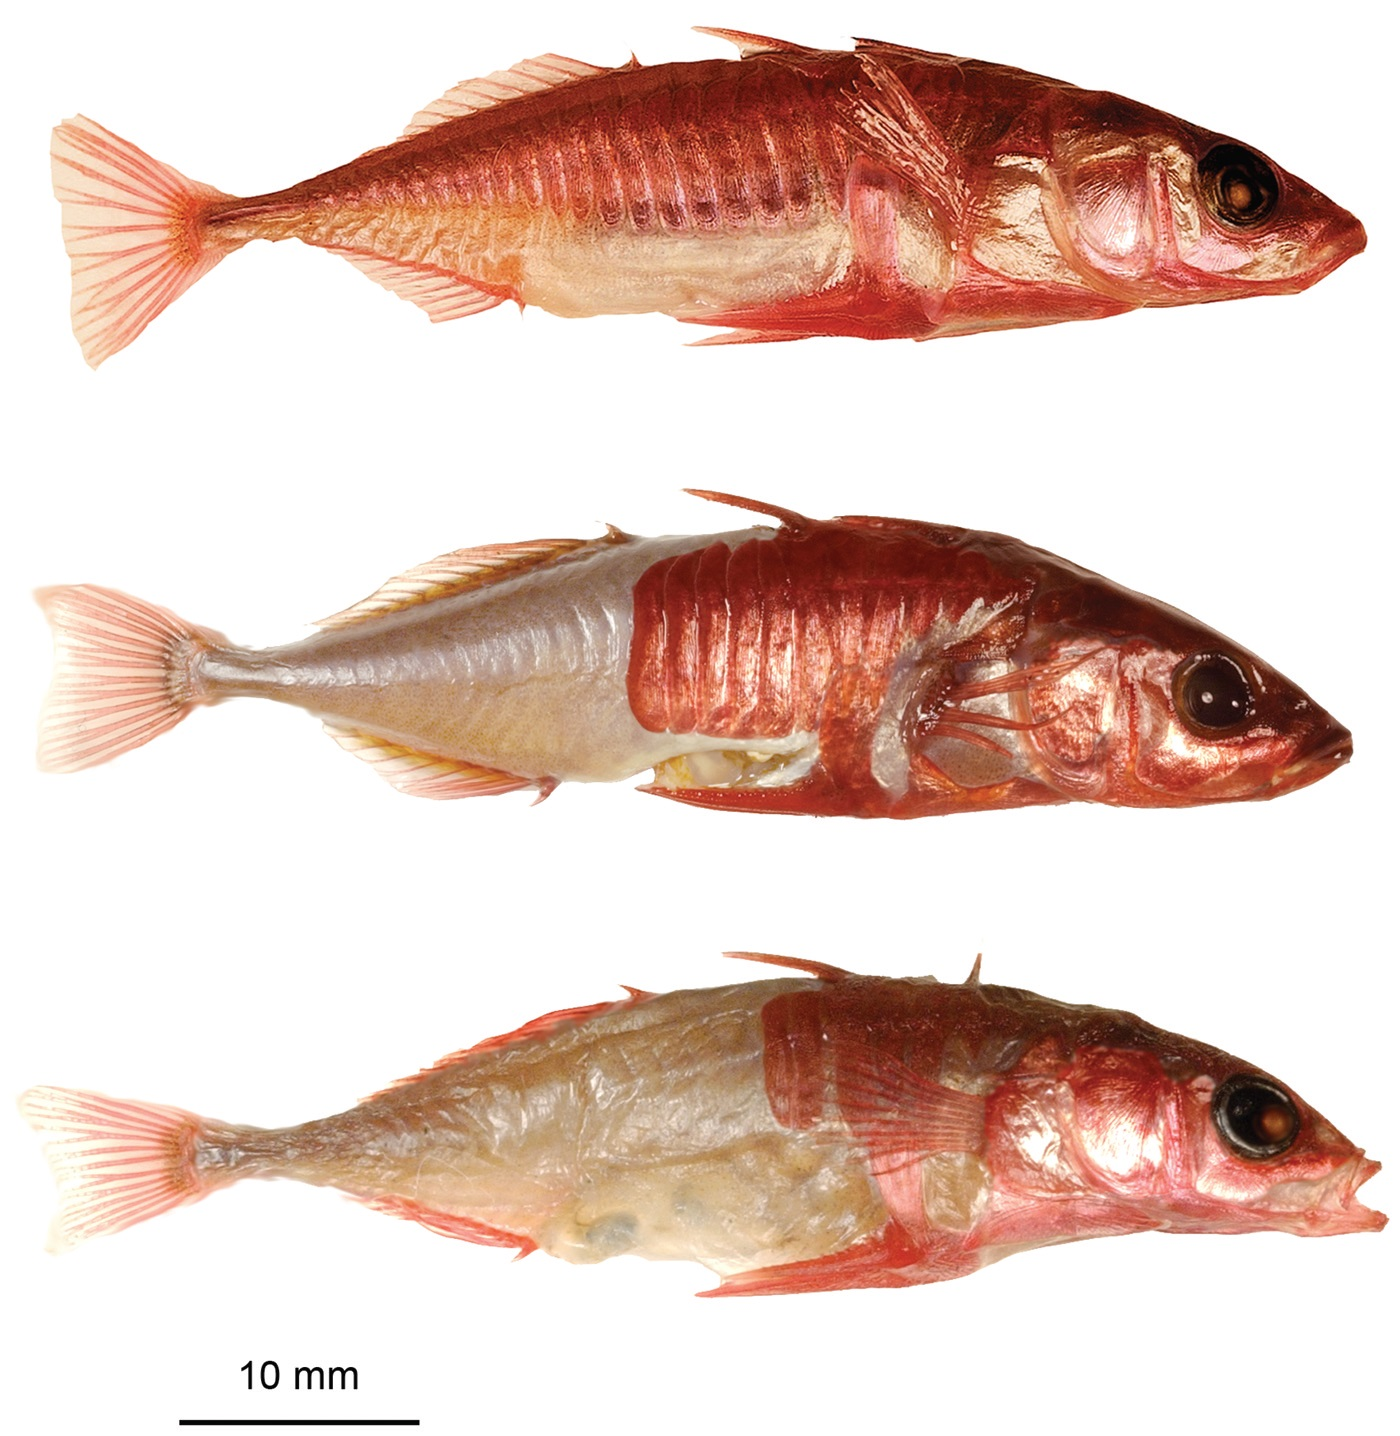 From top to bottom: Completely, partial, and low plated threespine stickleback. From Barret et al. 2008